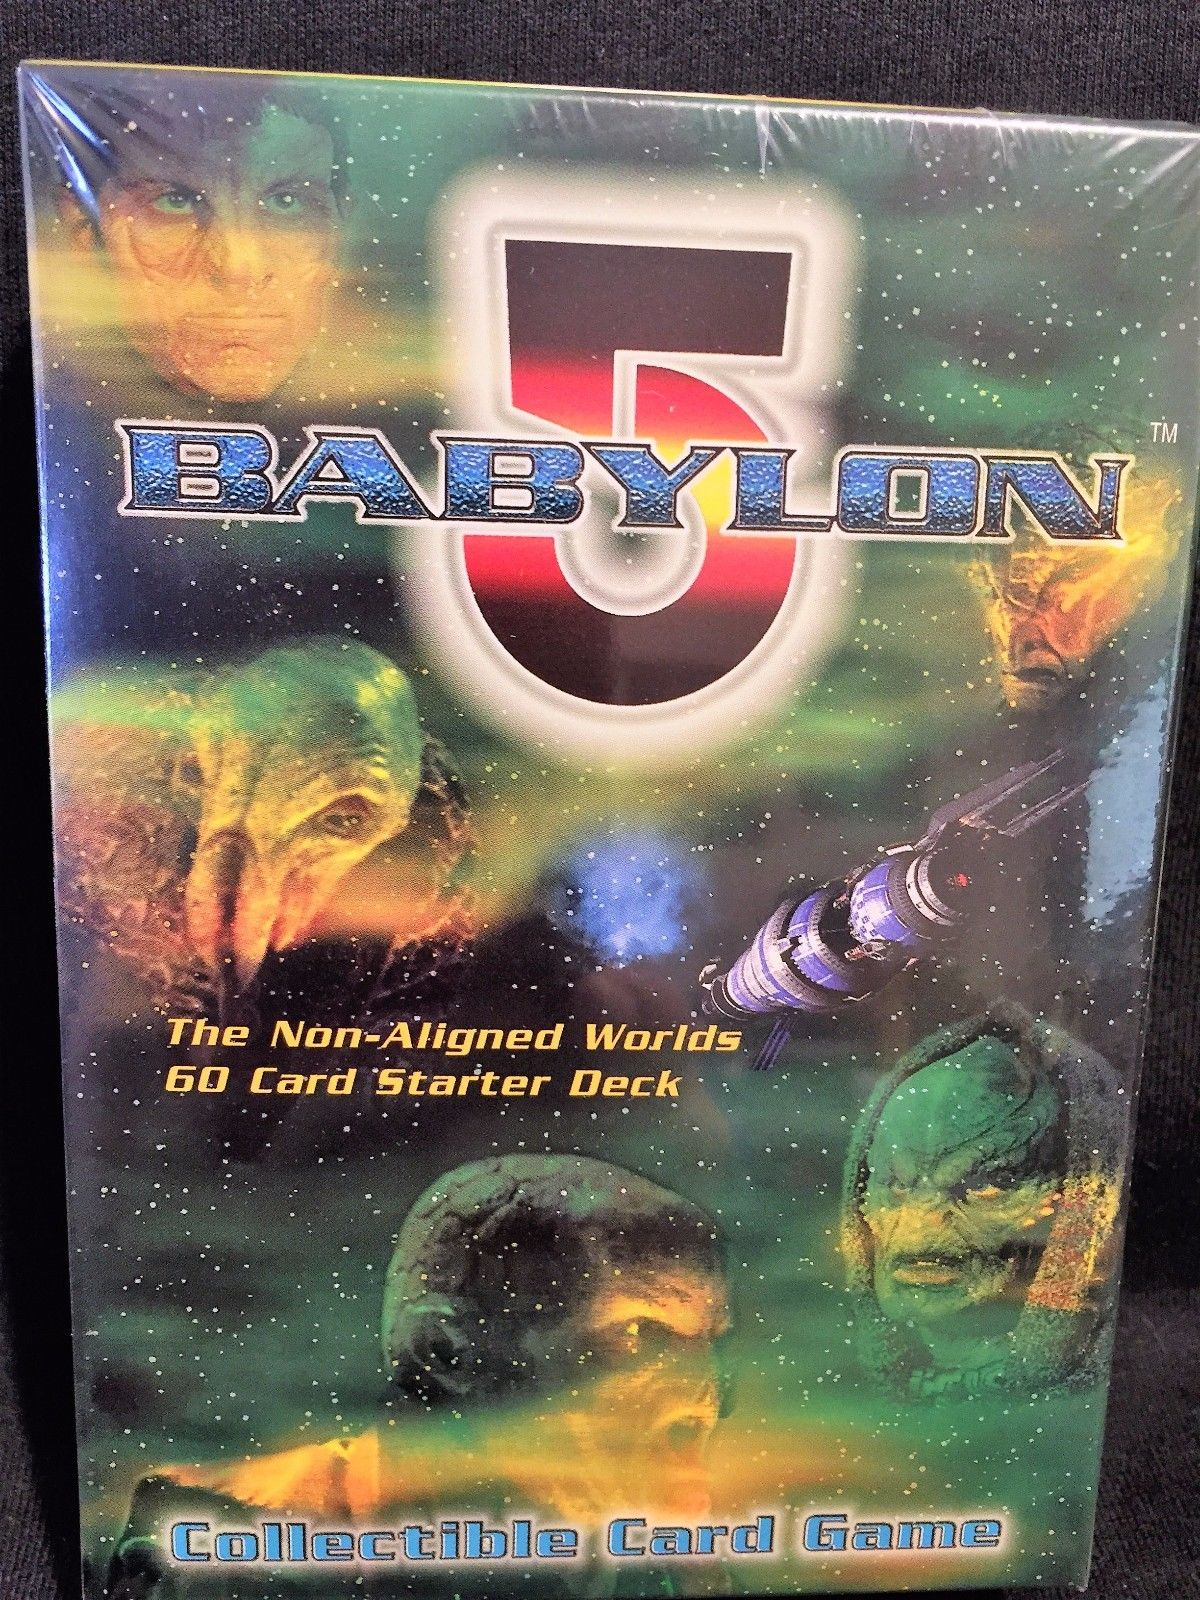 Non-Aligned Worlds 60 Card Starter Deck Babylon 5 The Great War CCG Card Game